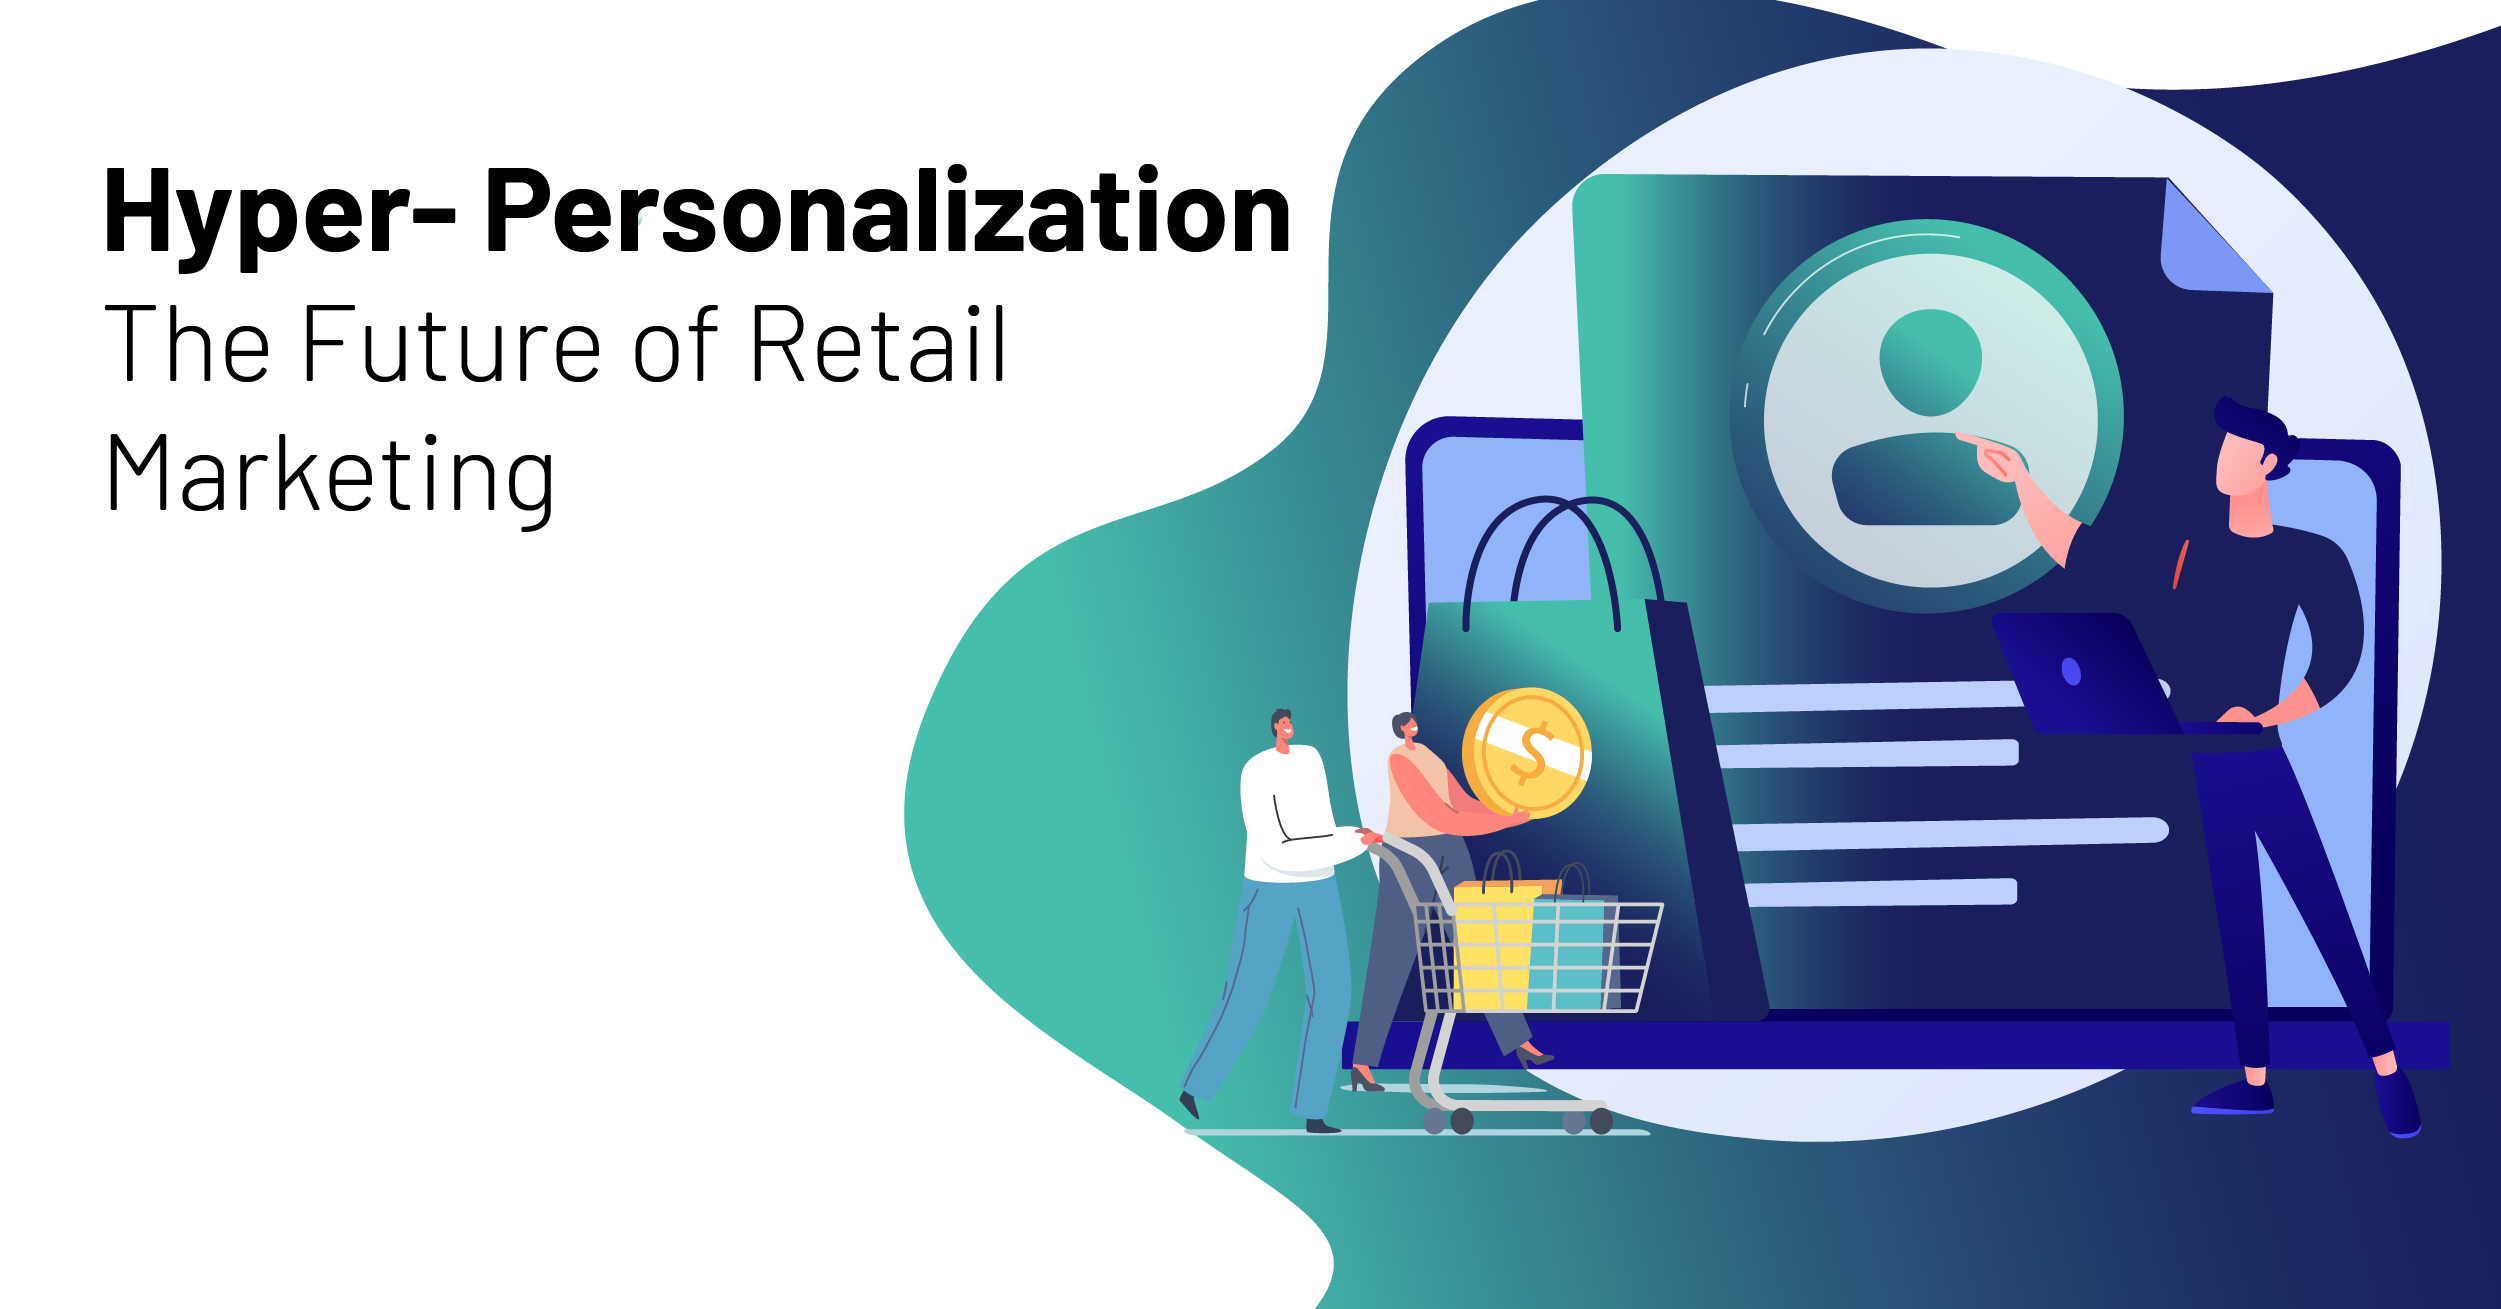 Why Hyper-personalization Matters